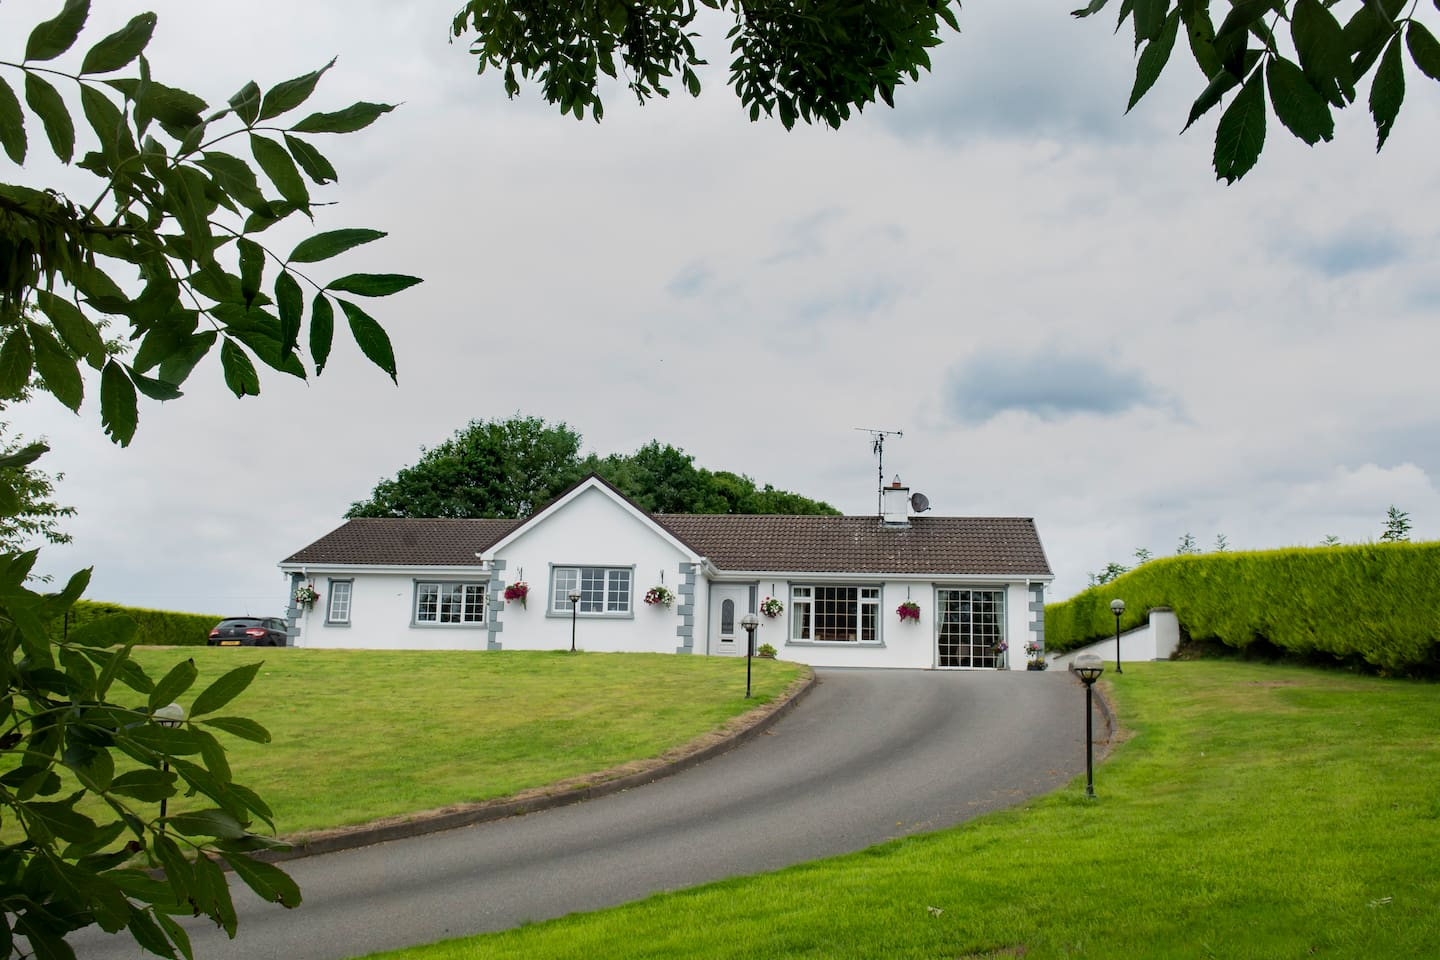 Set in beautiful countryside 4.5 miles from Omagh, a warm welcome awaits you. The scenic Sperrins roll to the North and enjoy breakfast looking towards the Pigeon Top.  Beautiful walks await you in the nearby 'Hills Above Drumquin'